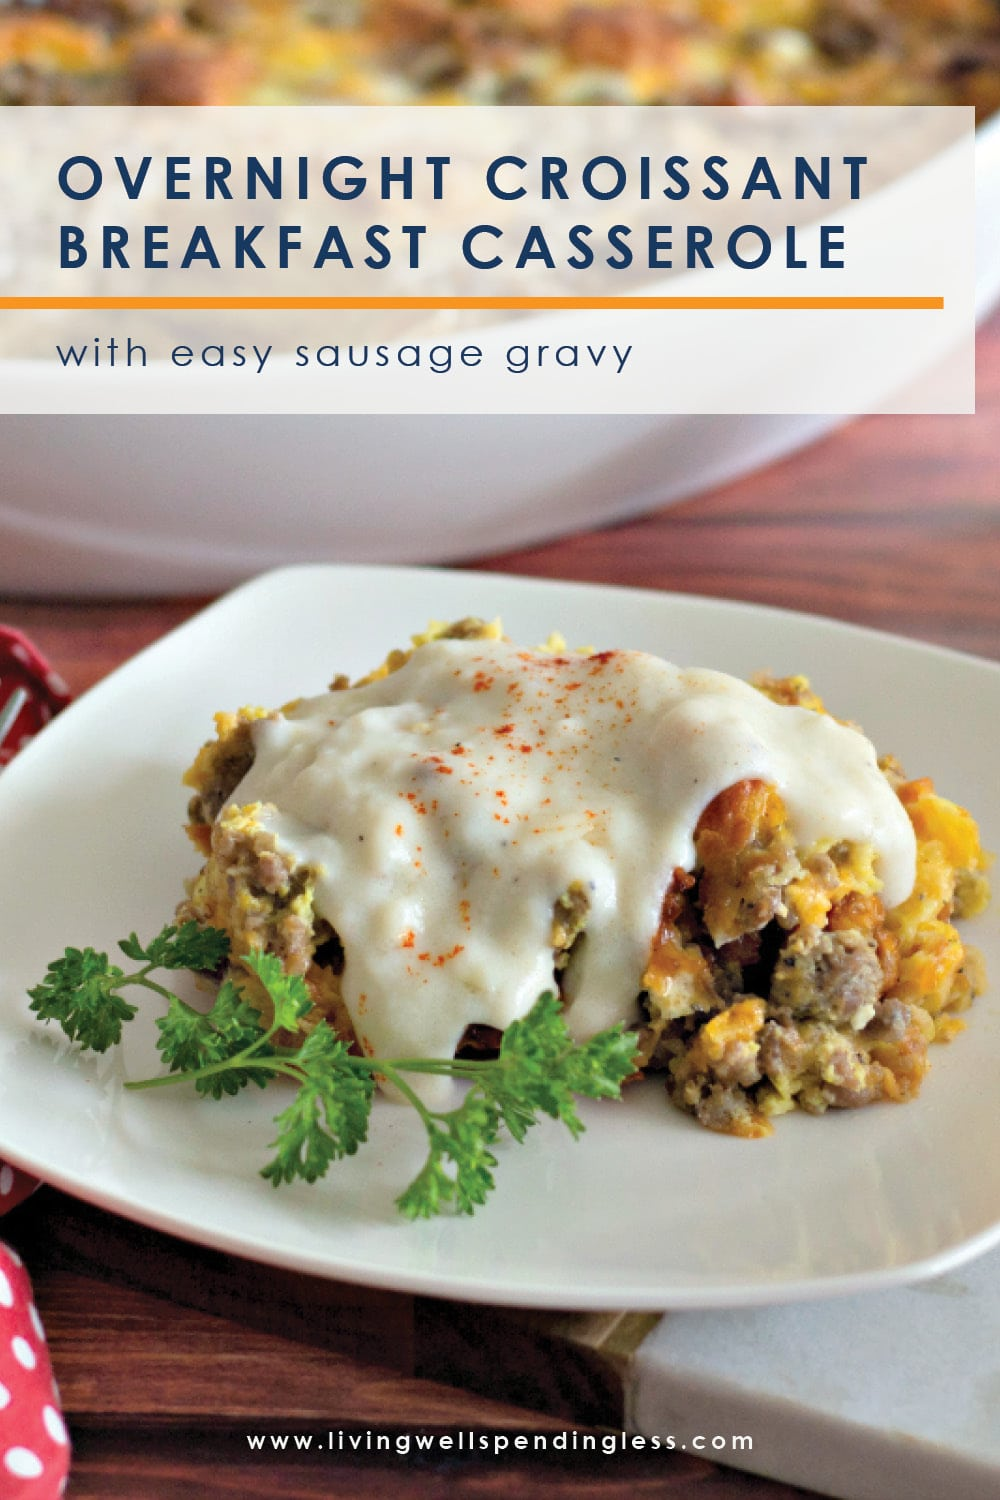 This overnight croissant breakfast casserole with sawmill gravy can be made the night before so all you have to do the next morning is pop it into the oven! Perfect for the holidays (or anytime)! #recipes #breakfastrecipes #holidayrecipes #makeaheadrecipes #breakfastcasserole